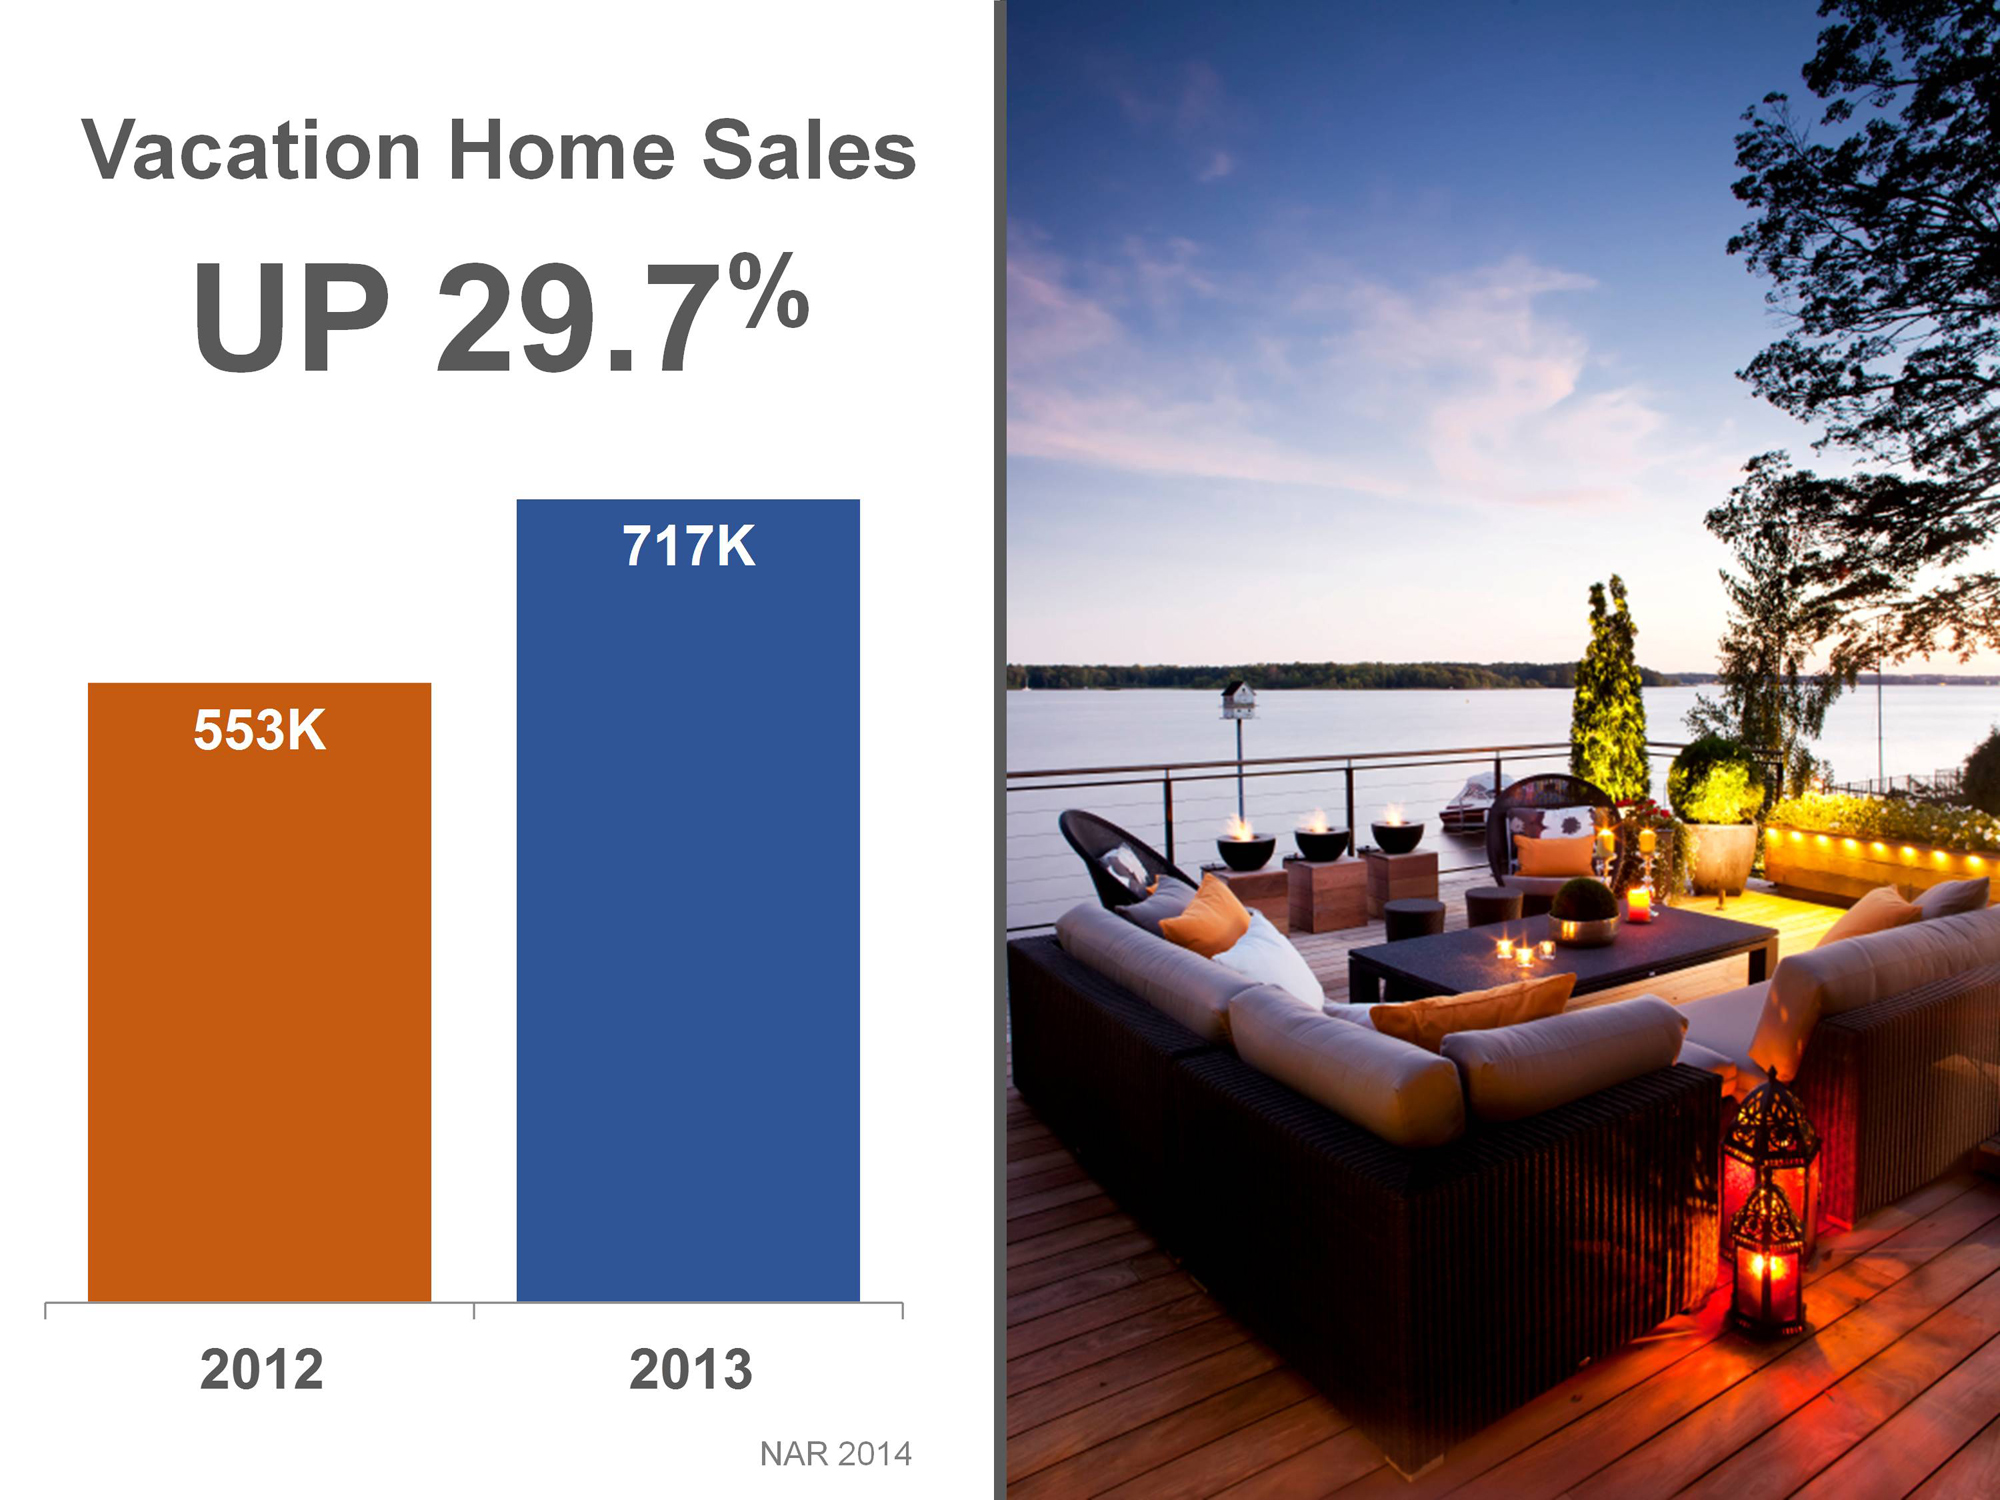 Vacation Home Sales Are Up